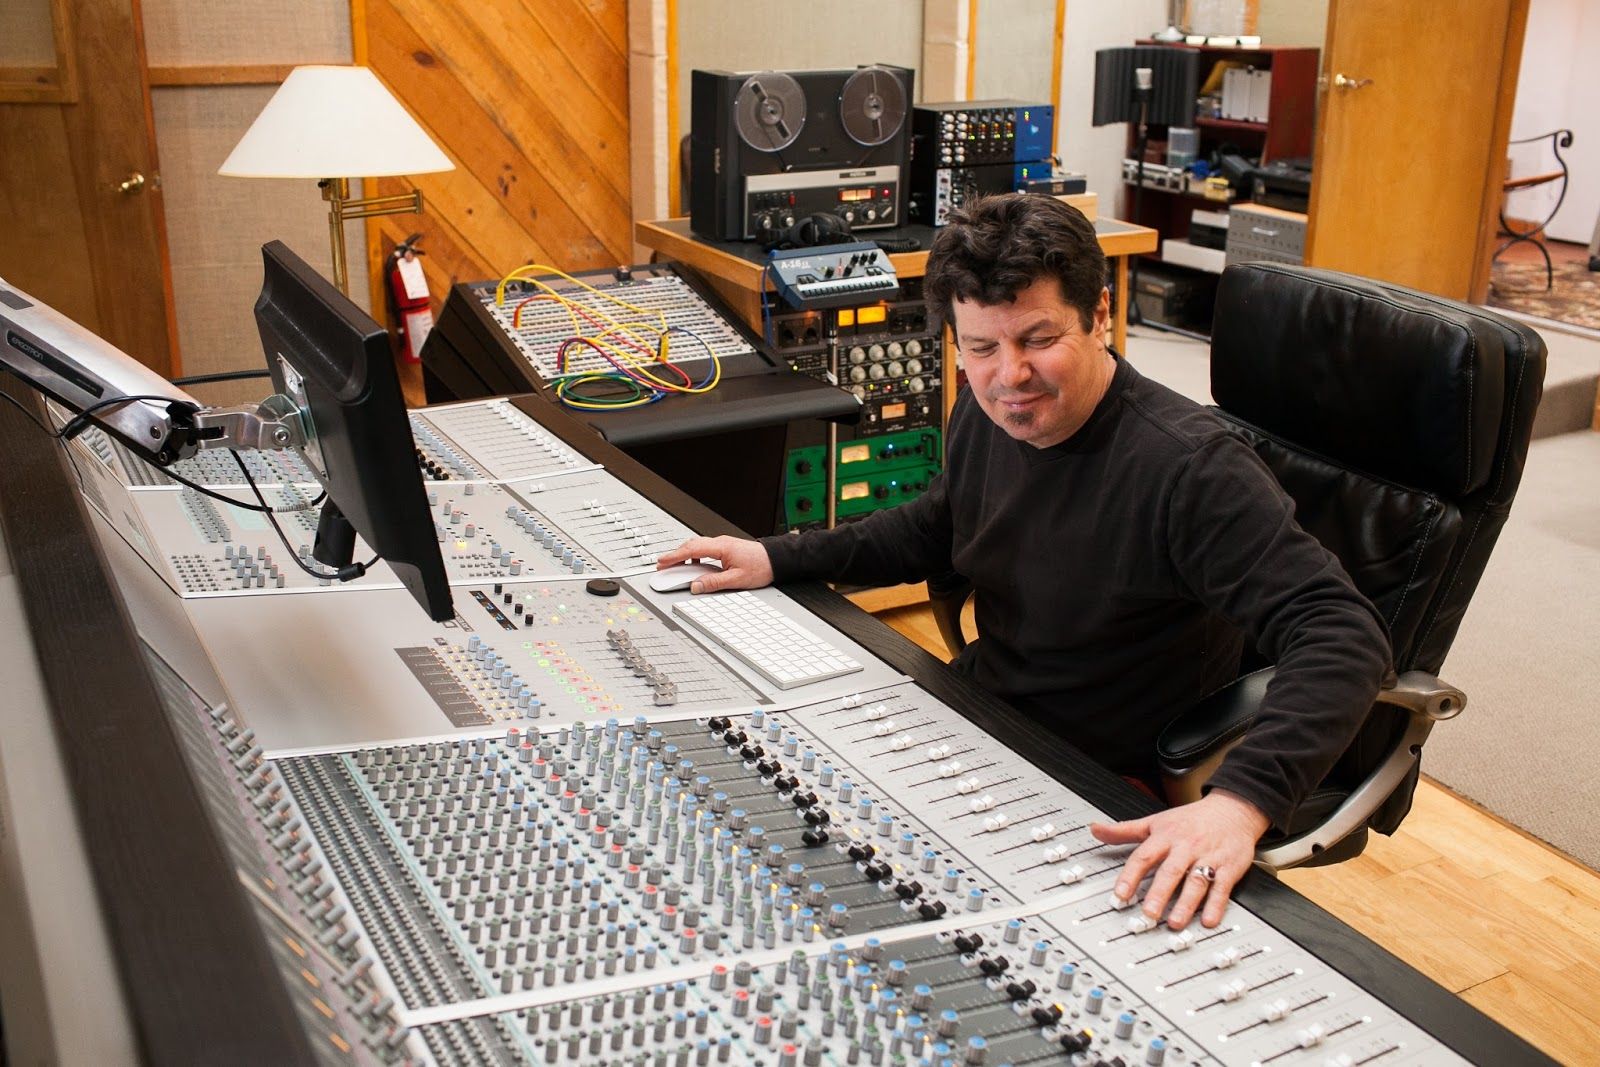 Kitchen Sink Studio Santa Fe